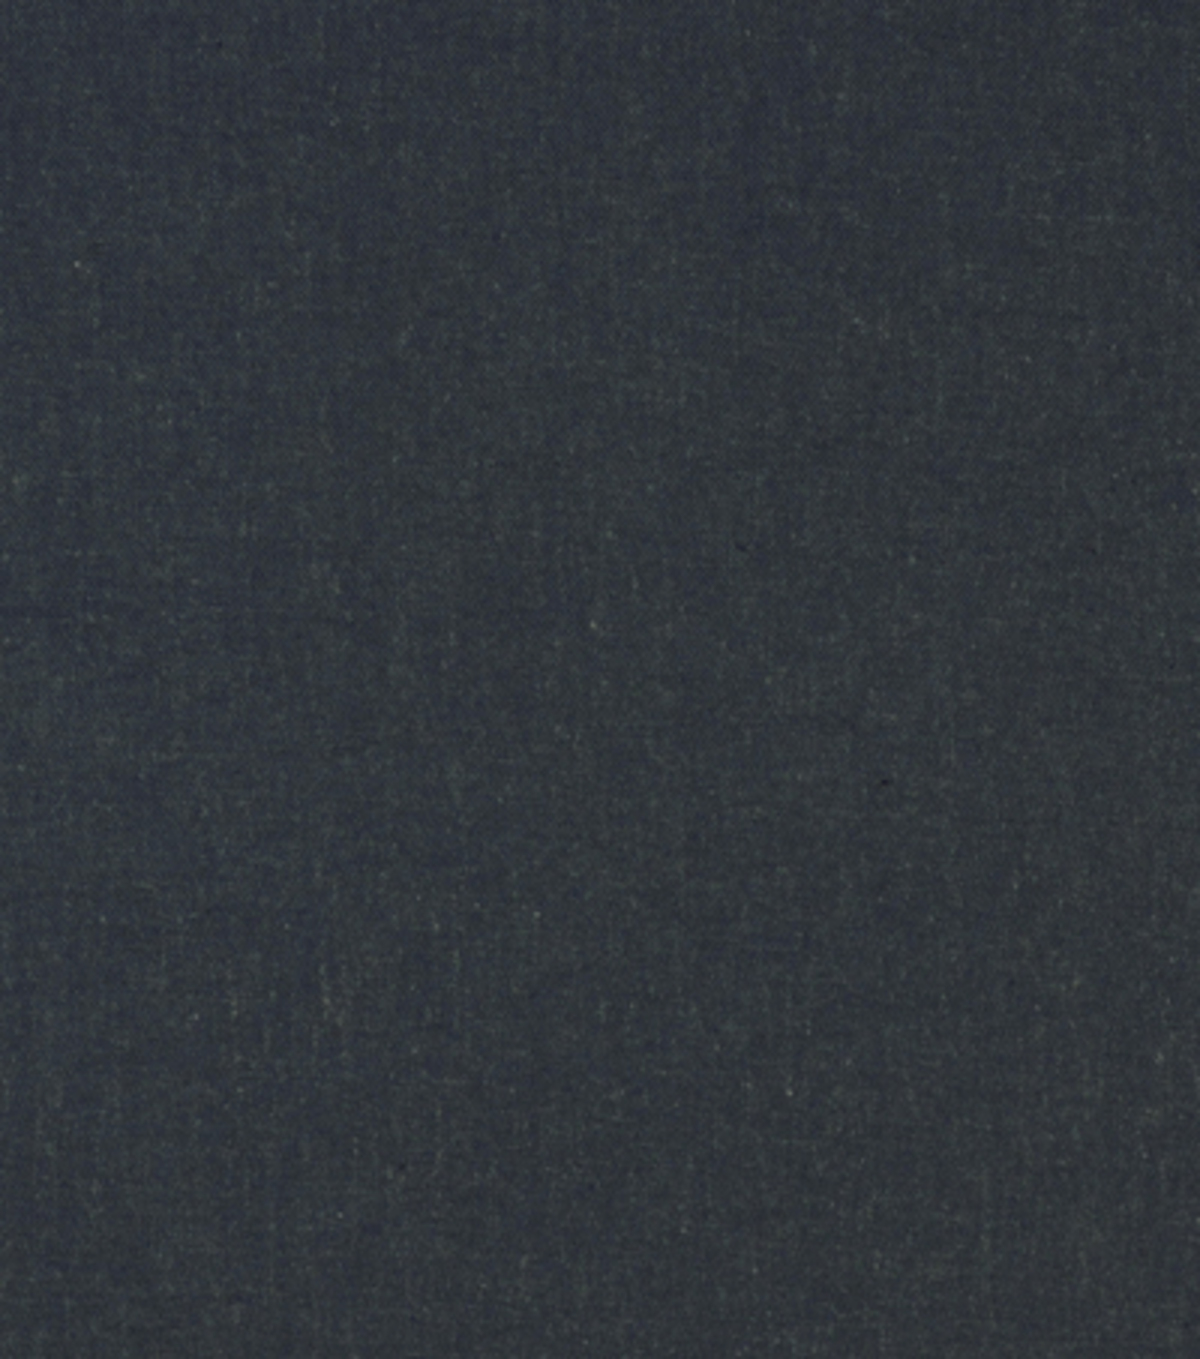 Home Decor 8\u0022x8\u0022 Fabric Swatch-Covington Melrose 557 Dark Denim